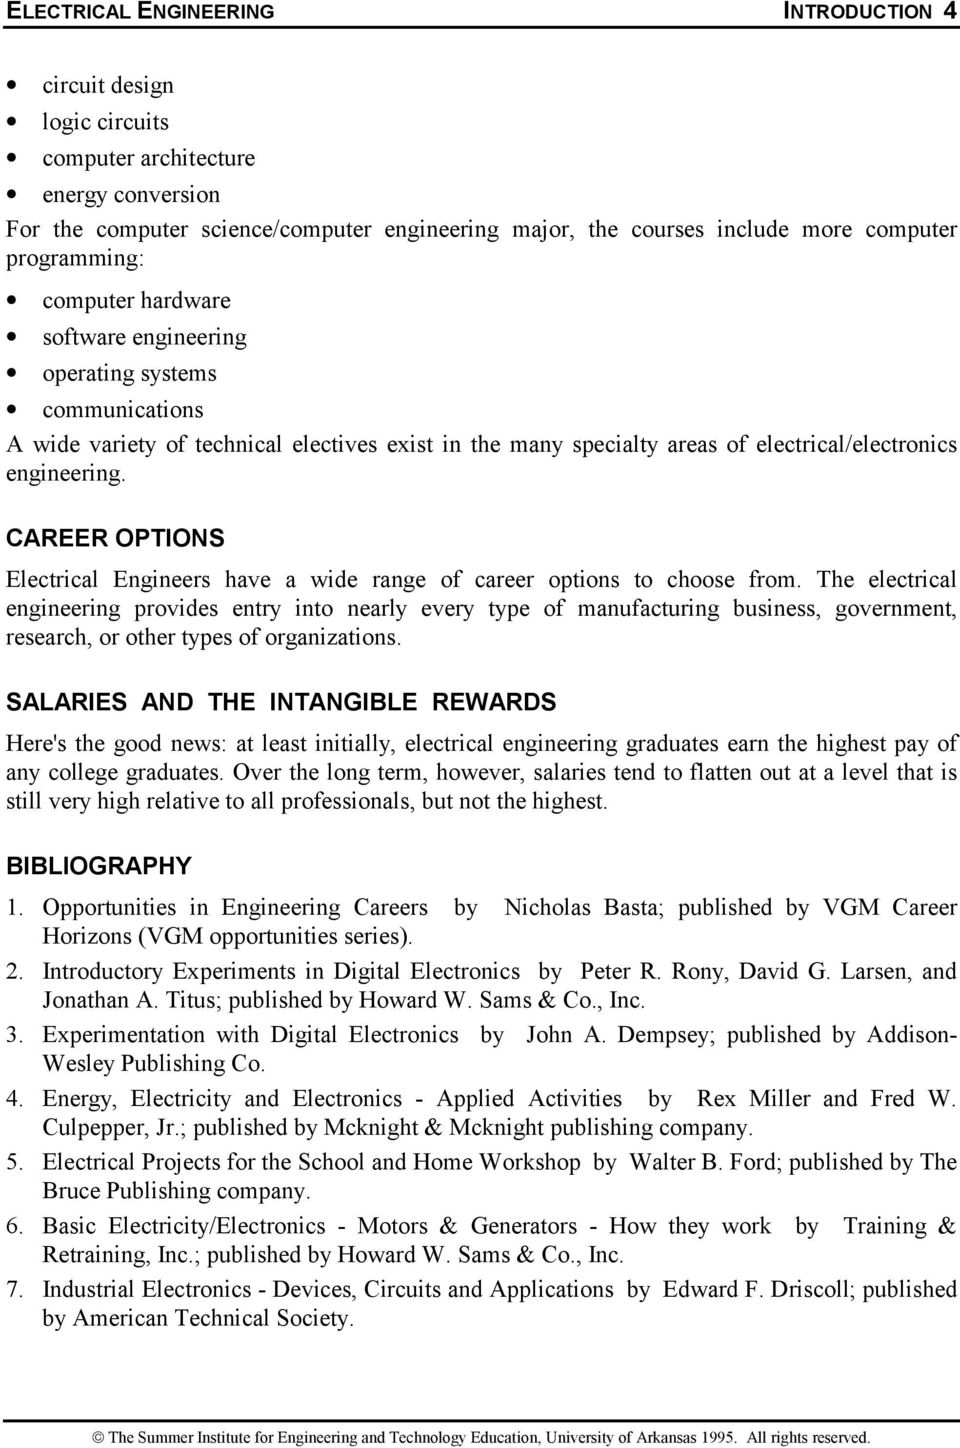 Introduction To Electrical Engineering Pdf Circuit Design Career Options Engineers Have A Wide Range Of Choose From